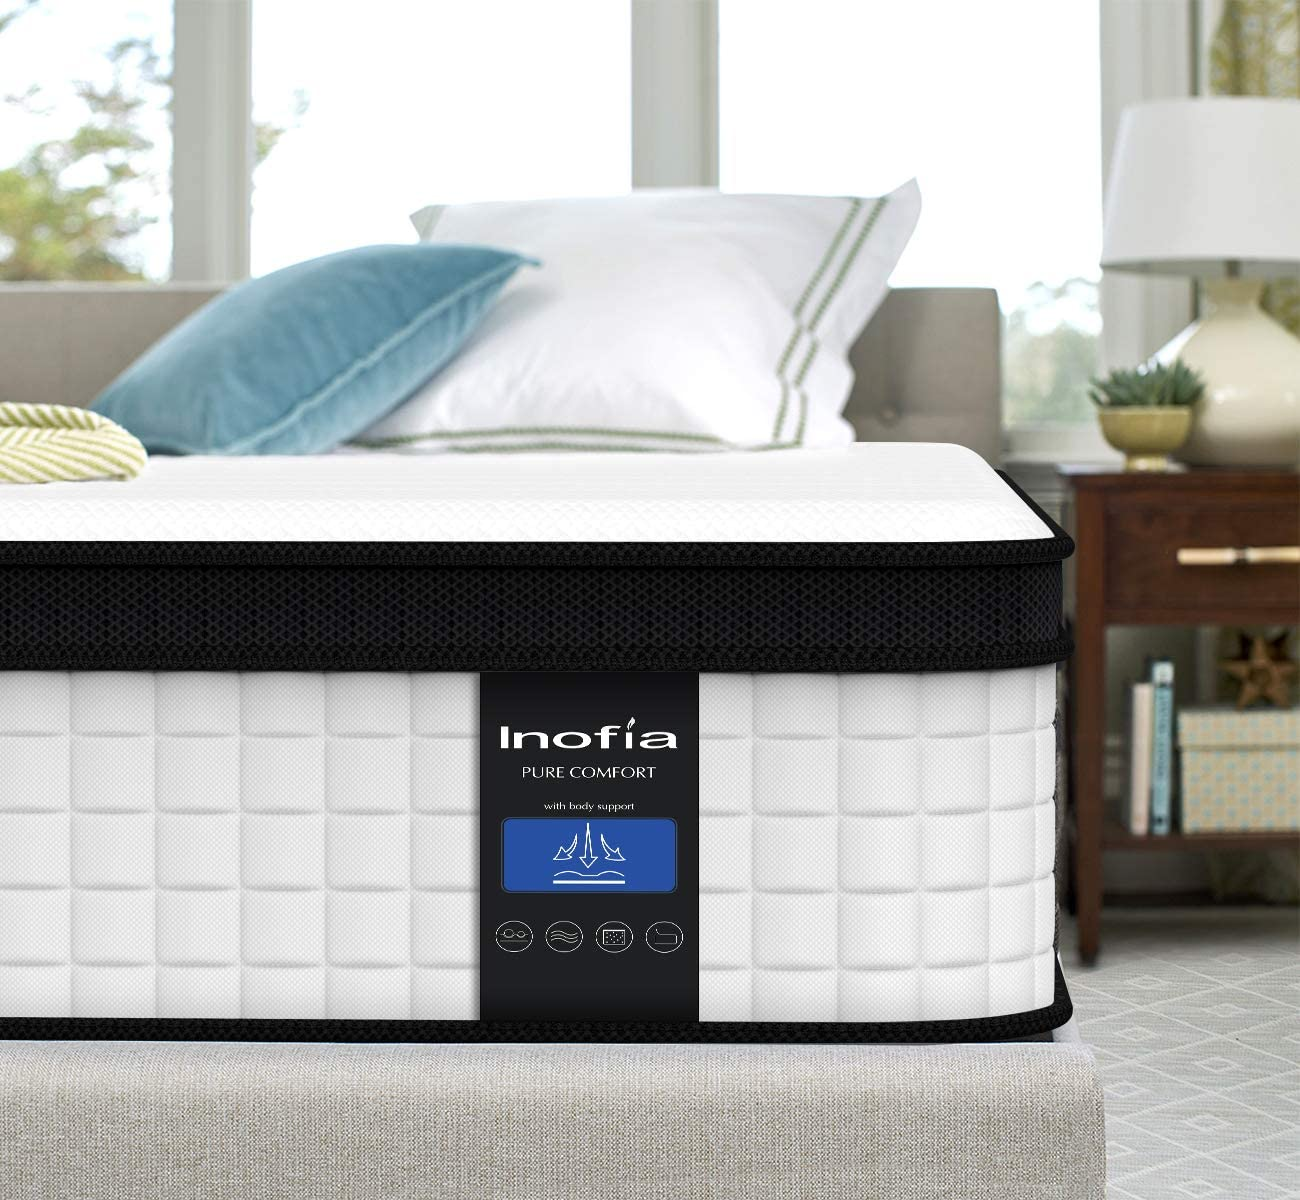 Twin Mattress, Inofia 10 Inch Memory Foam Hybrid Mattress in a Box, Breathable Comfortable Cool Single Mattress,Supportive & Pressure Relief, Motion Isolating Individually Wrapped Coils, Twin Size